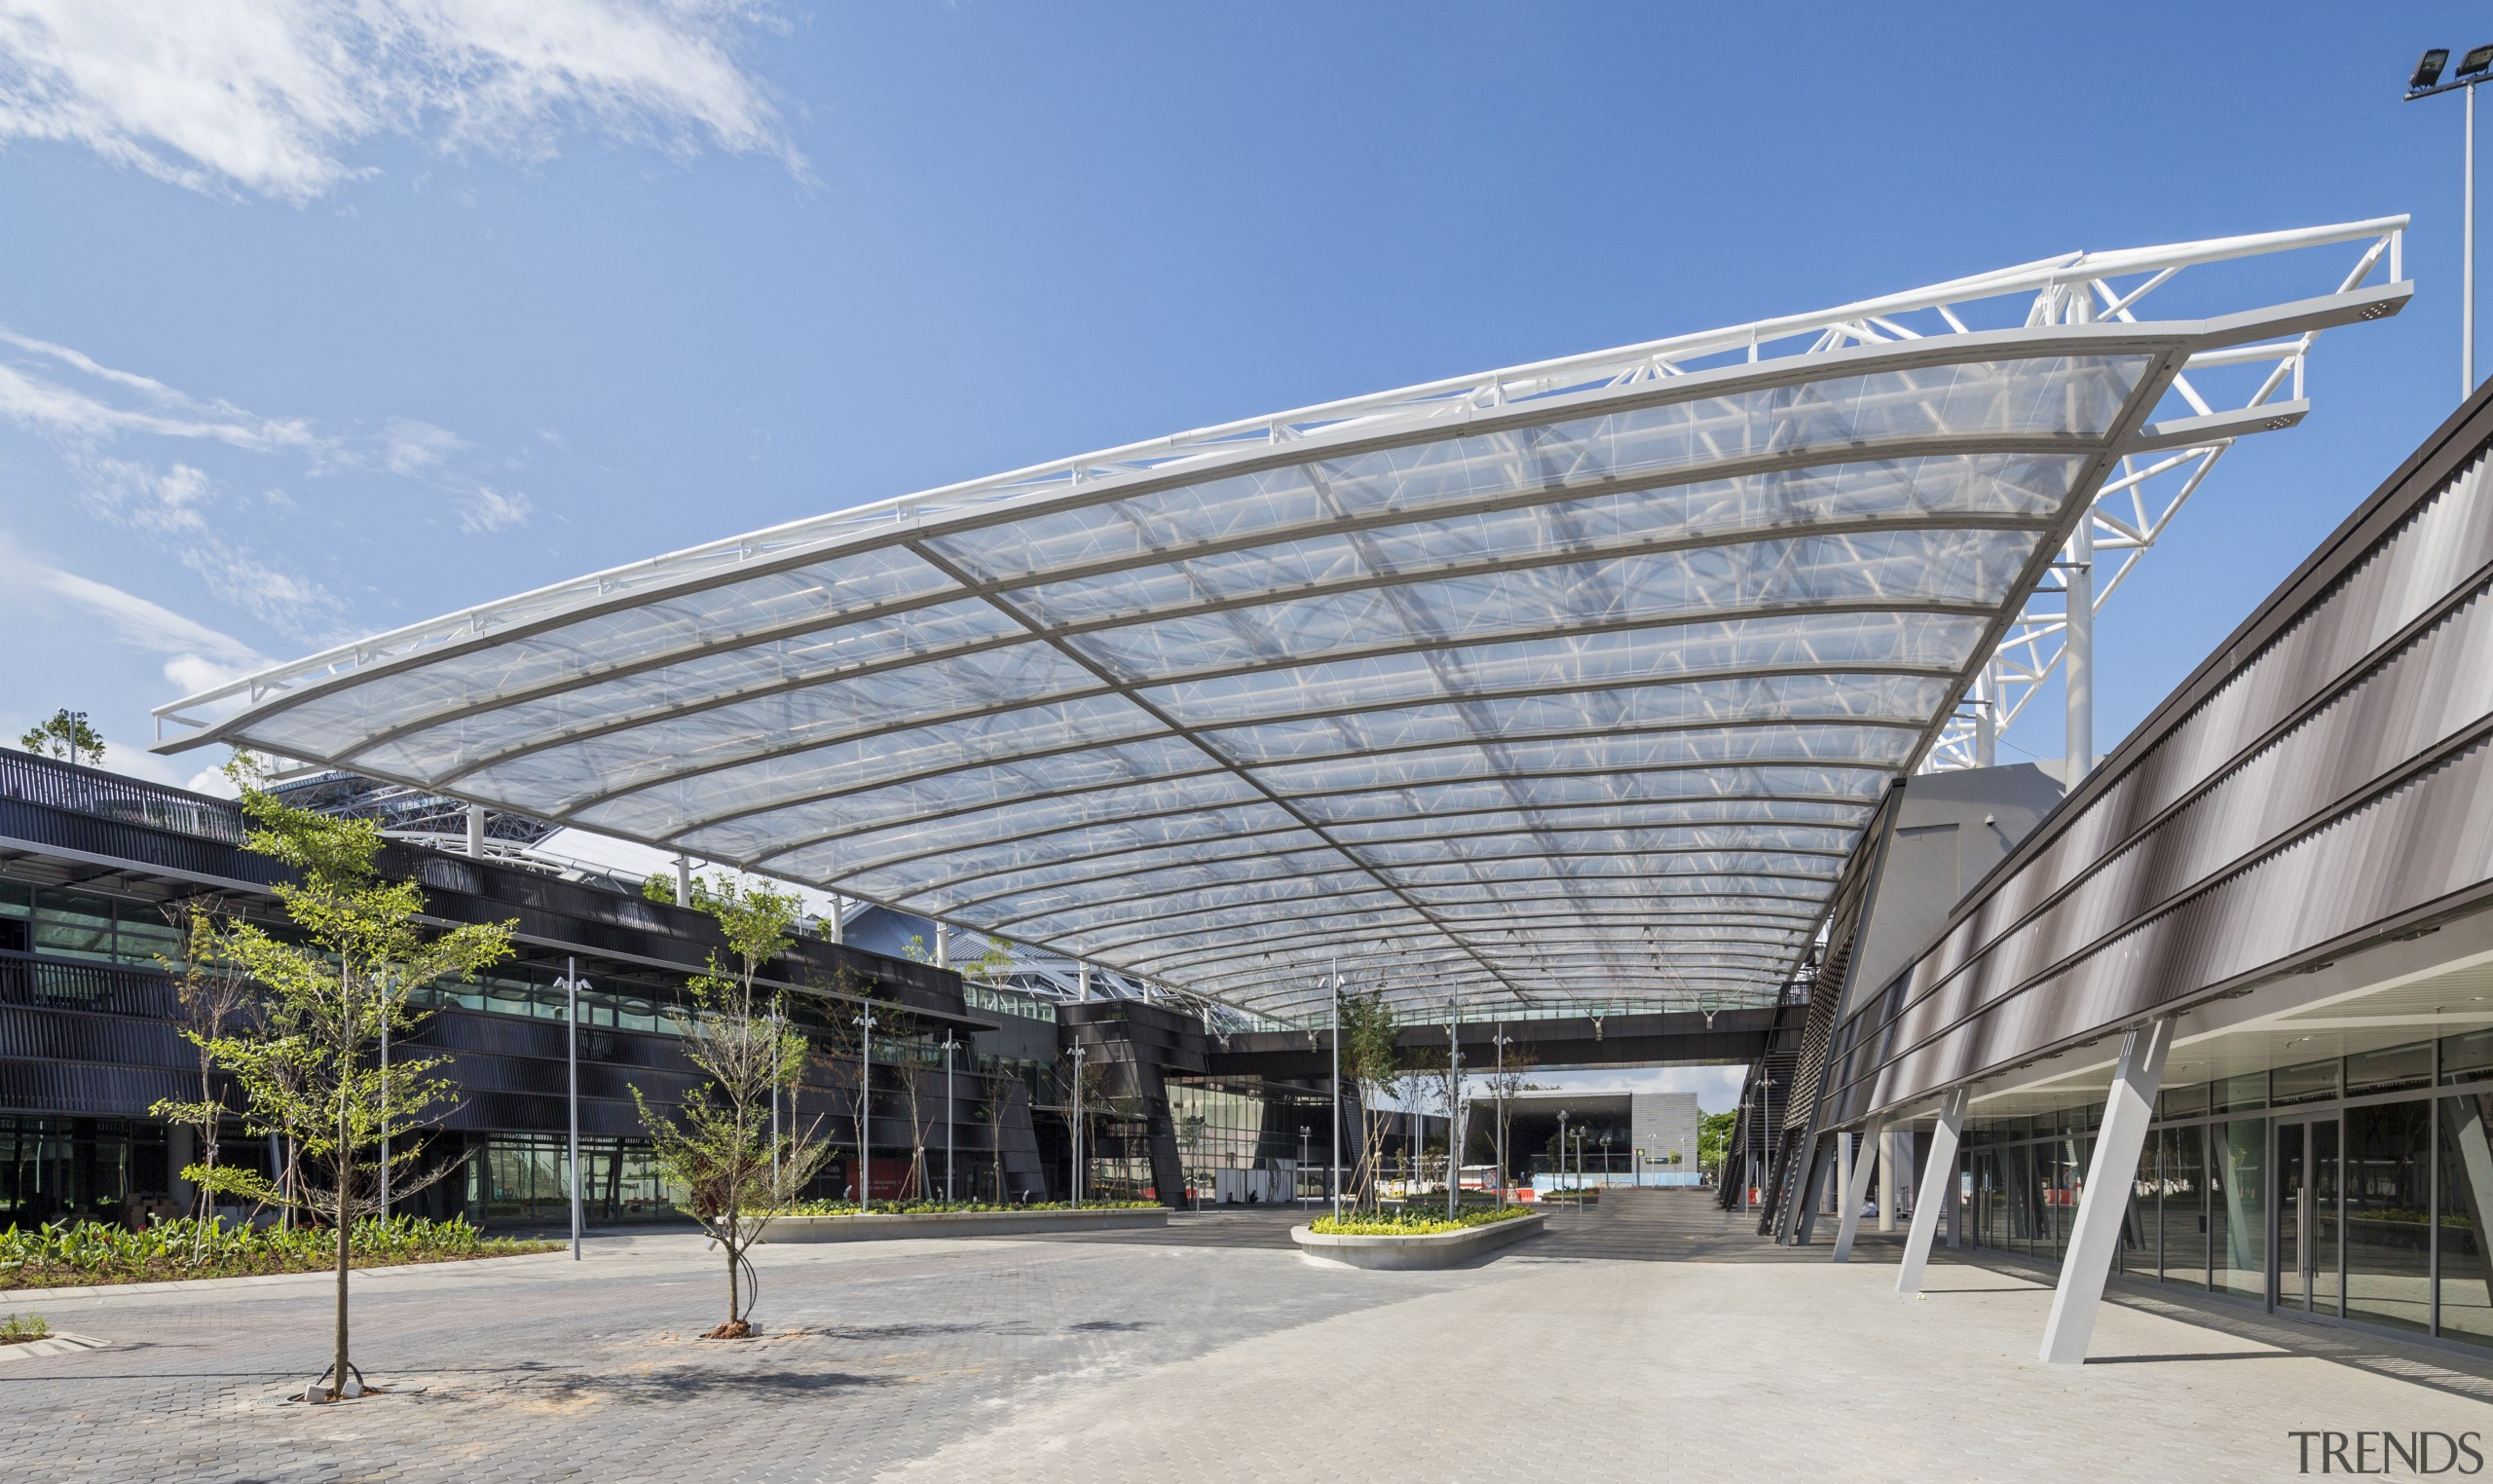 A semi-transparent roof element, which echoes the form architecture, building, convention center, corporate headquarters, daylighting, facade, headquarters, metropolitan area, mixed use, roof, structure, gray, teal